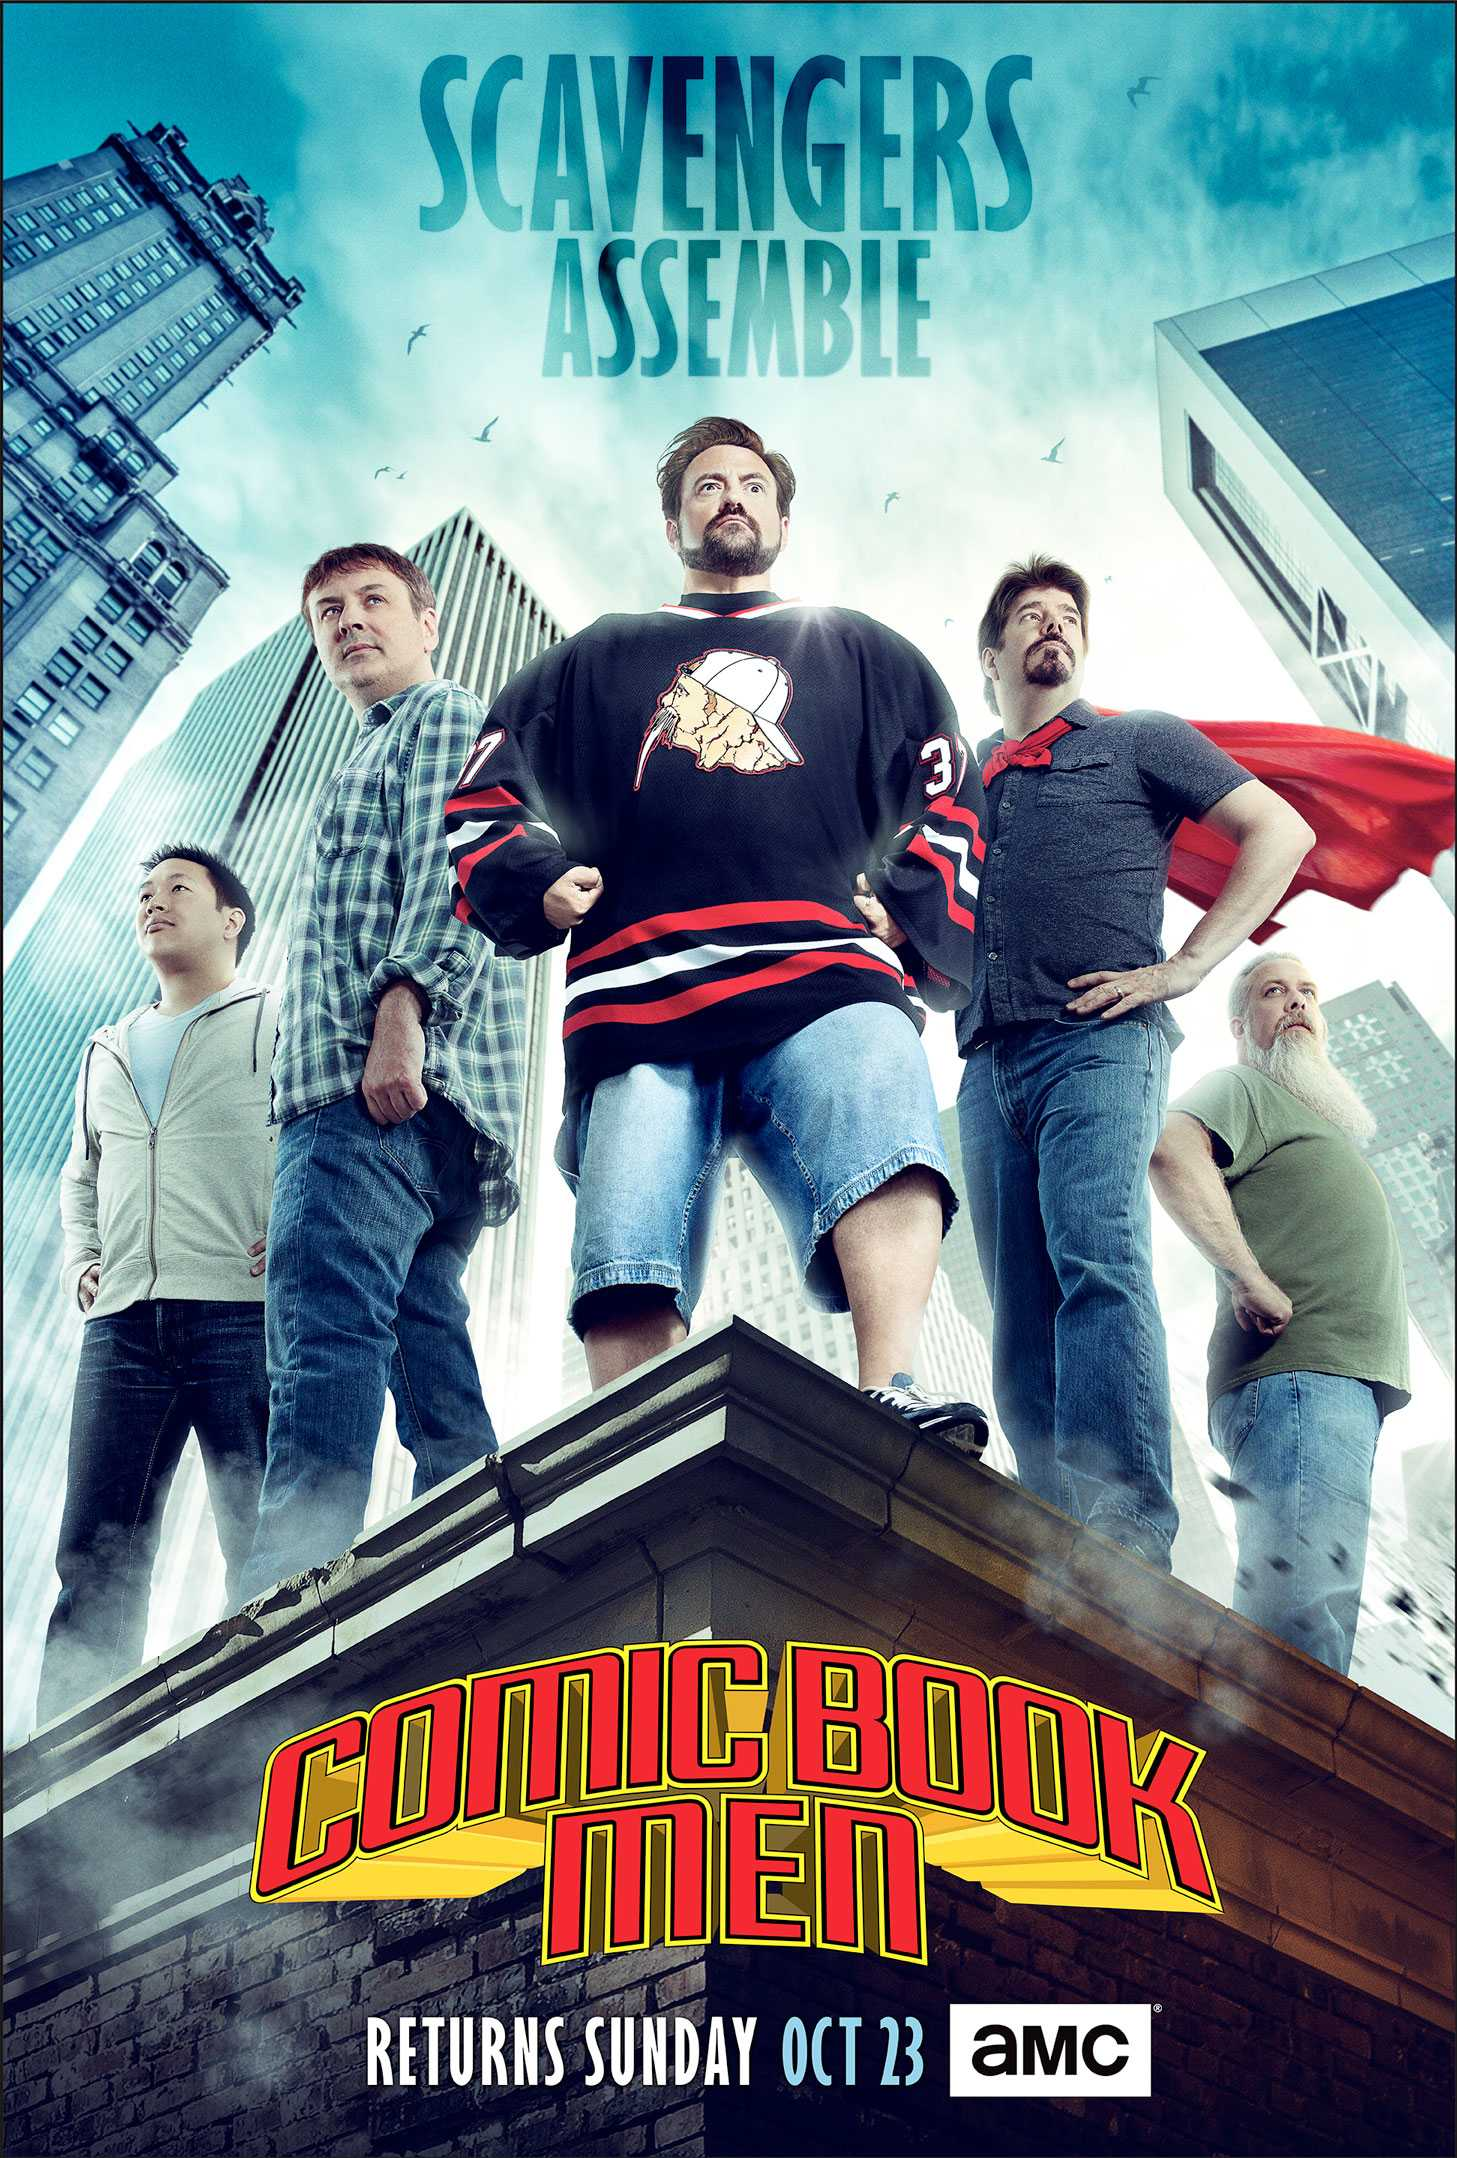 NYCC 2016: Catching Up With The Comic Book Men On What's Next | comic book men